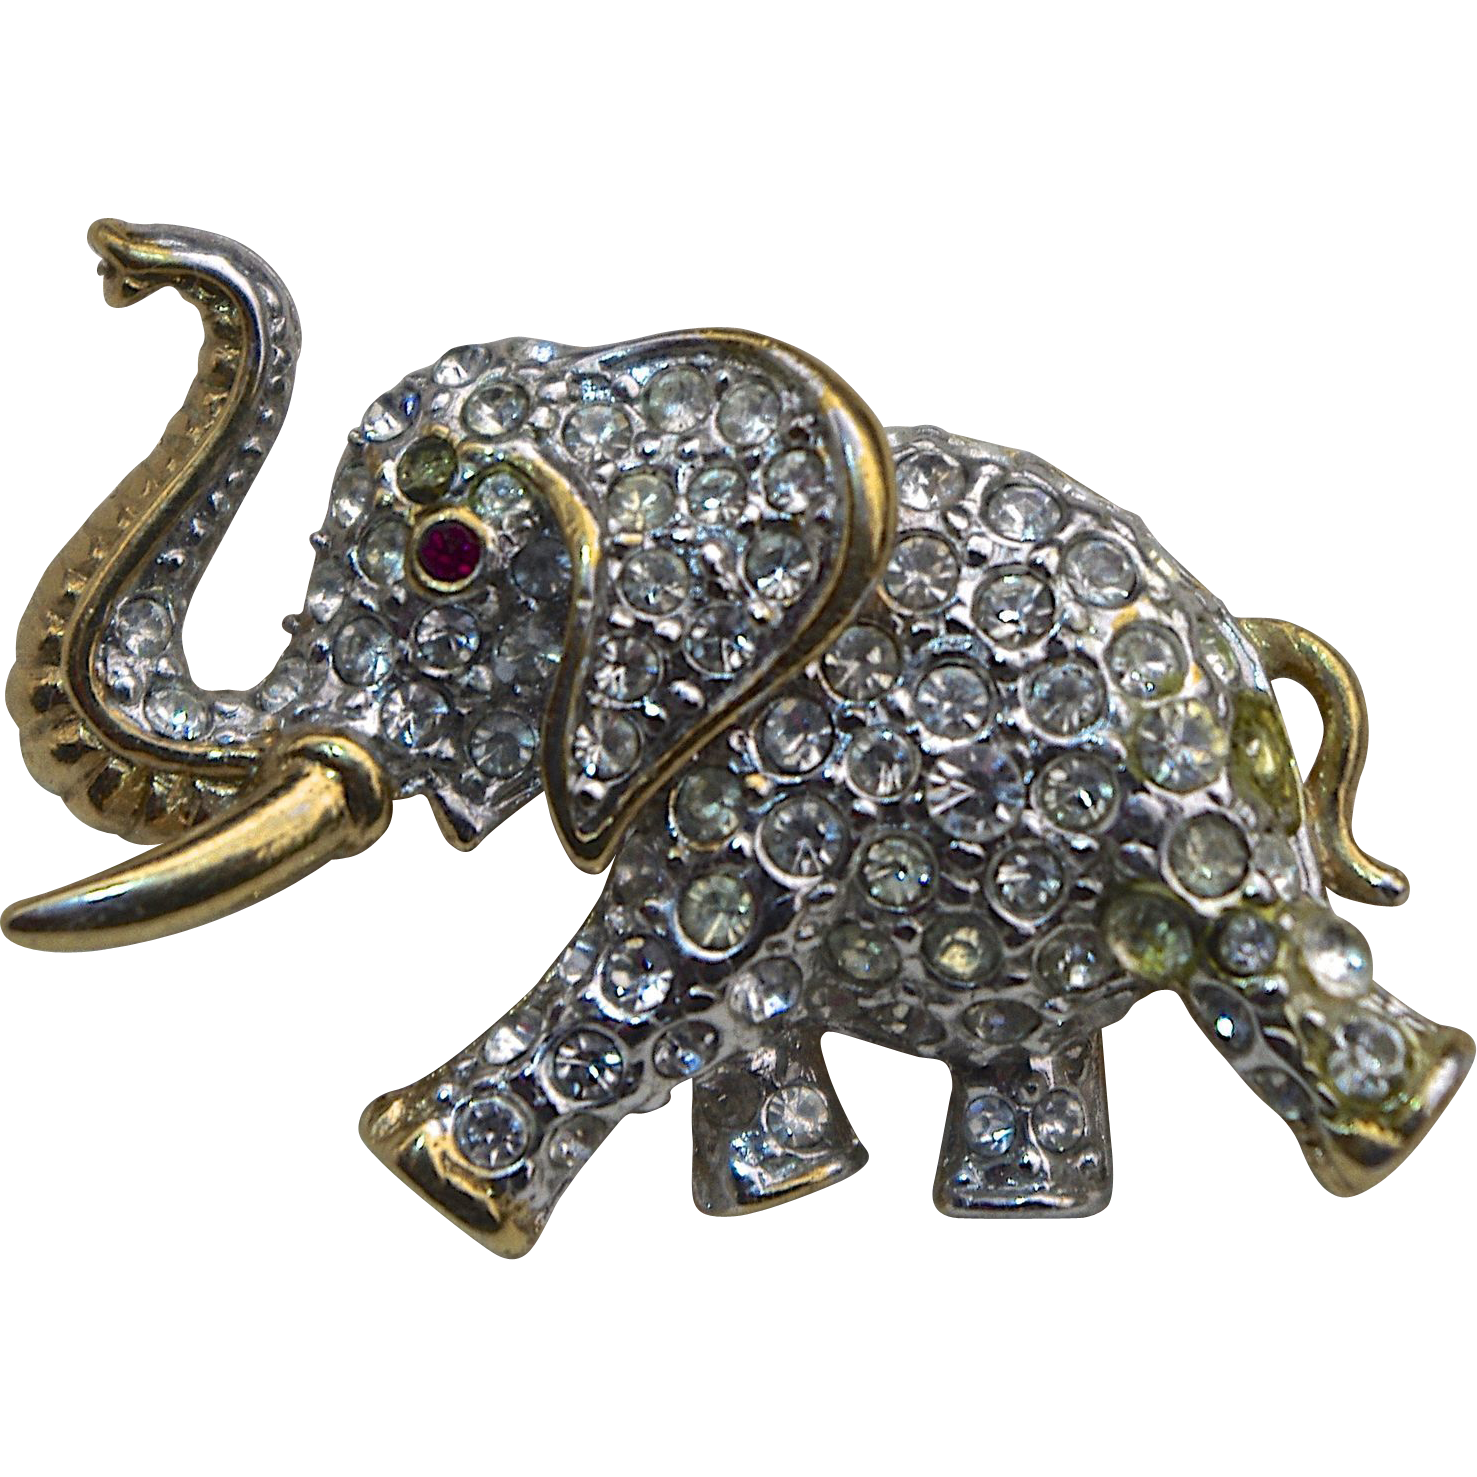 A Vintage Signed Attwood Sawyer Gold Tone And Pave Set Clear Swarovski Crystals Elephant Figural Brooch Elephants In Jewelry Elephant Jewelry Jewelry Vintage Costume Jewelry All content is available for personal use. pinterest